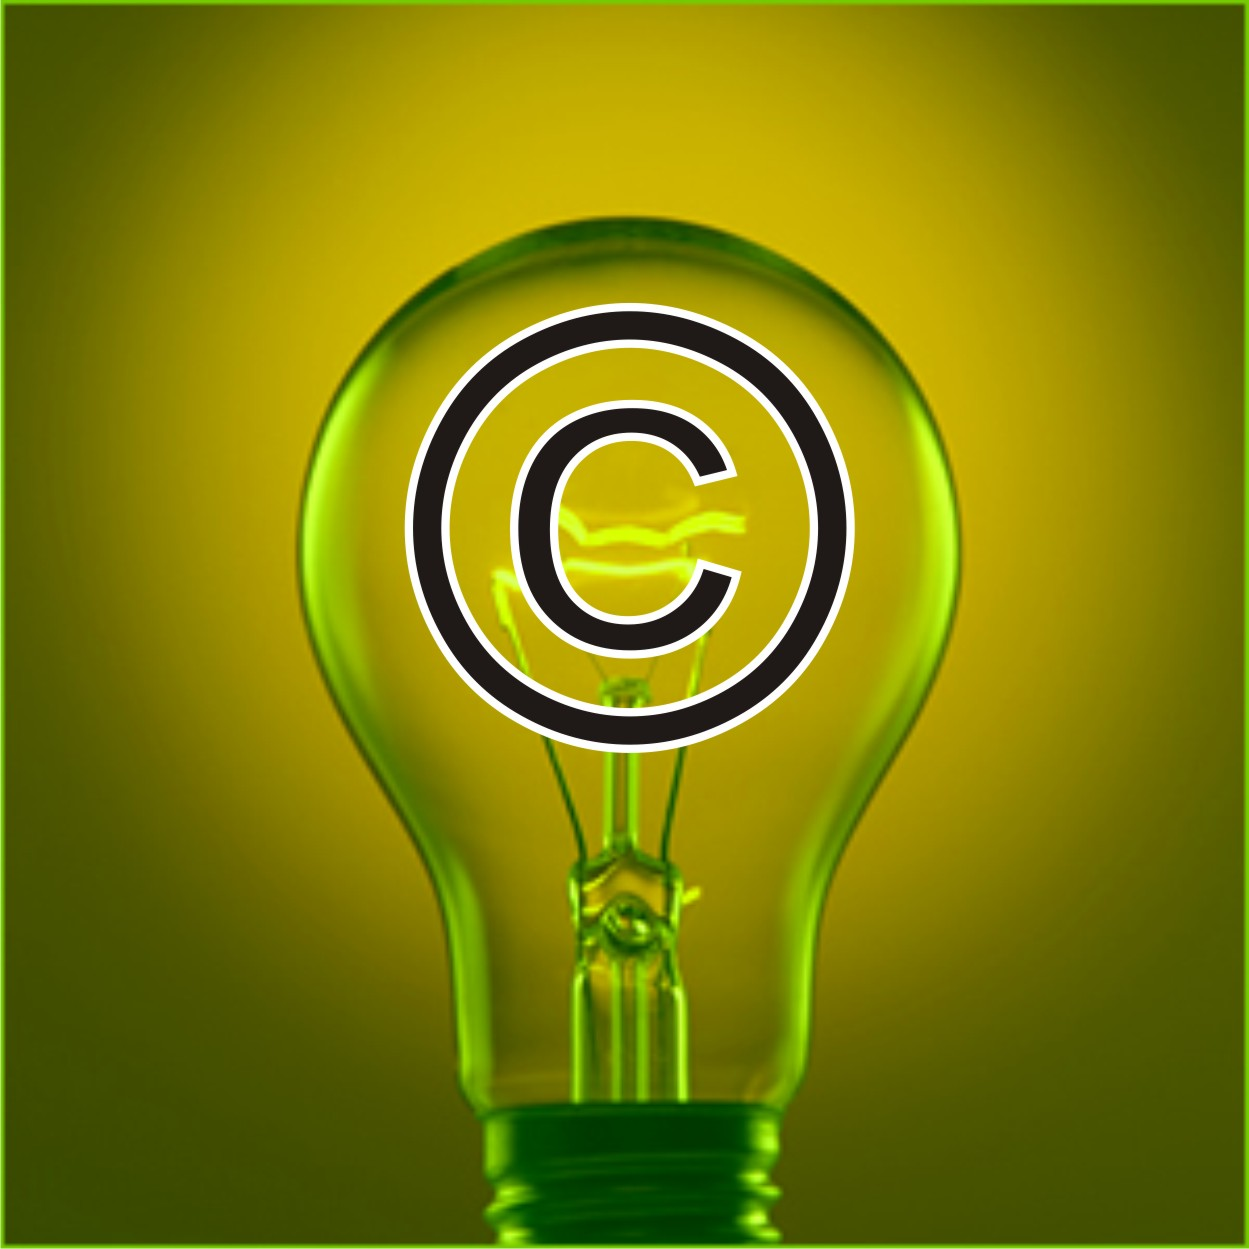 intellectual property rights news articles 2018-1-15 get latest & exclusive intellectual property news updates & stories explore photos & videos on intellectual property also get news from india and world including business, cricket, technology, sports, politics, entertainment & live news coverage online at.